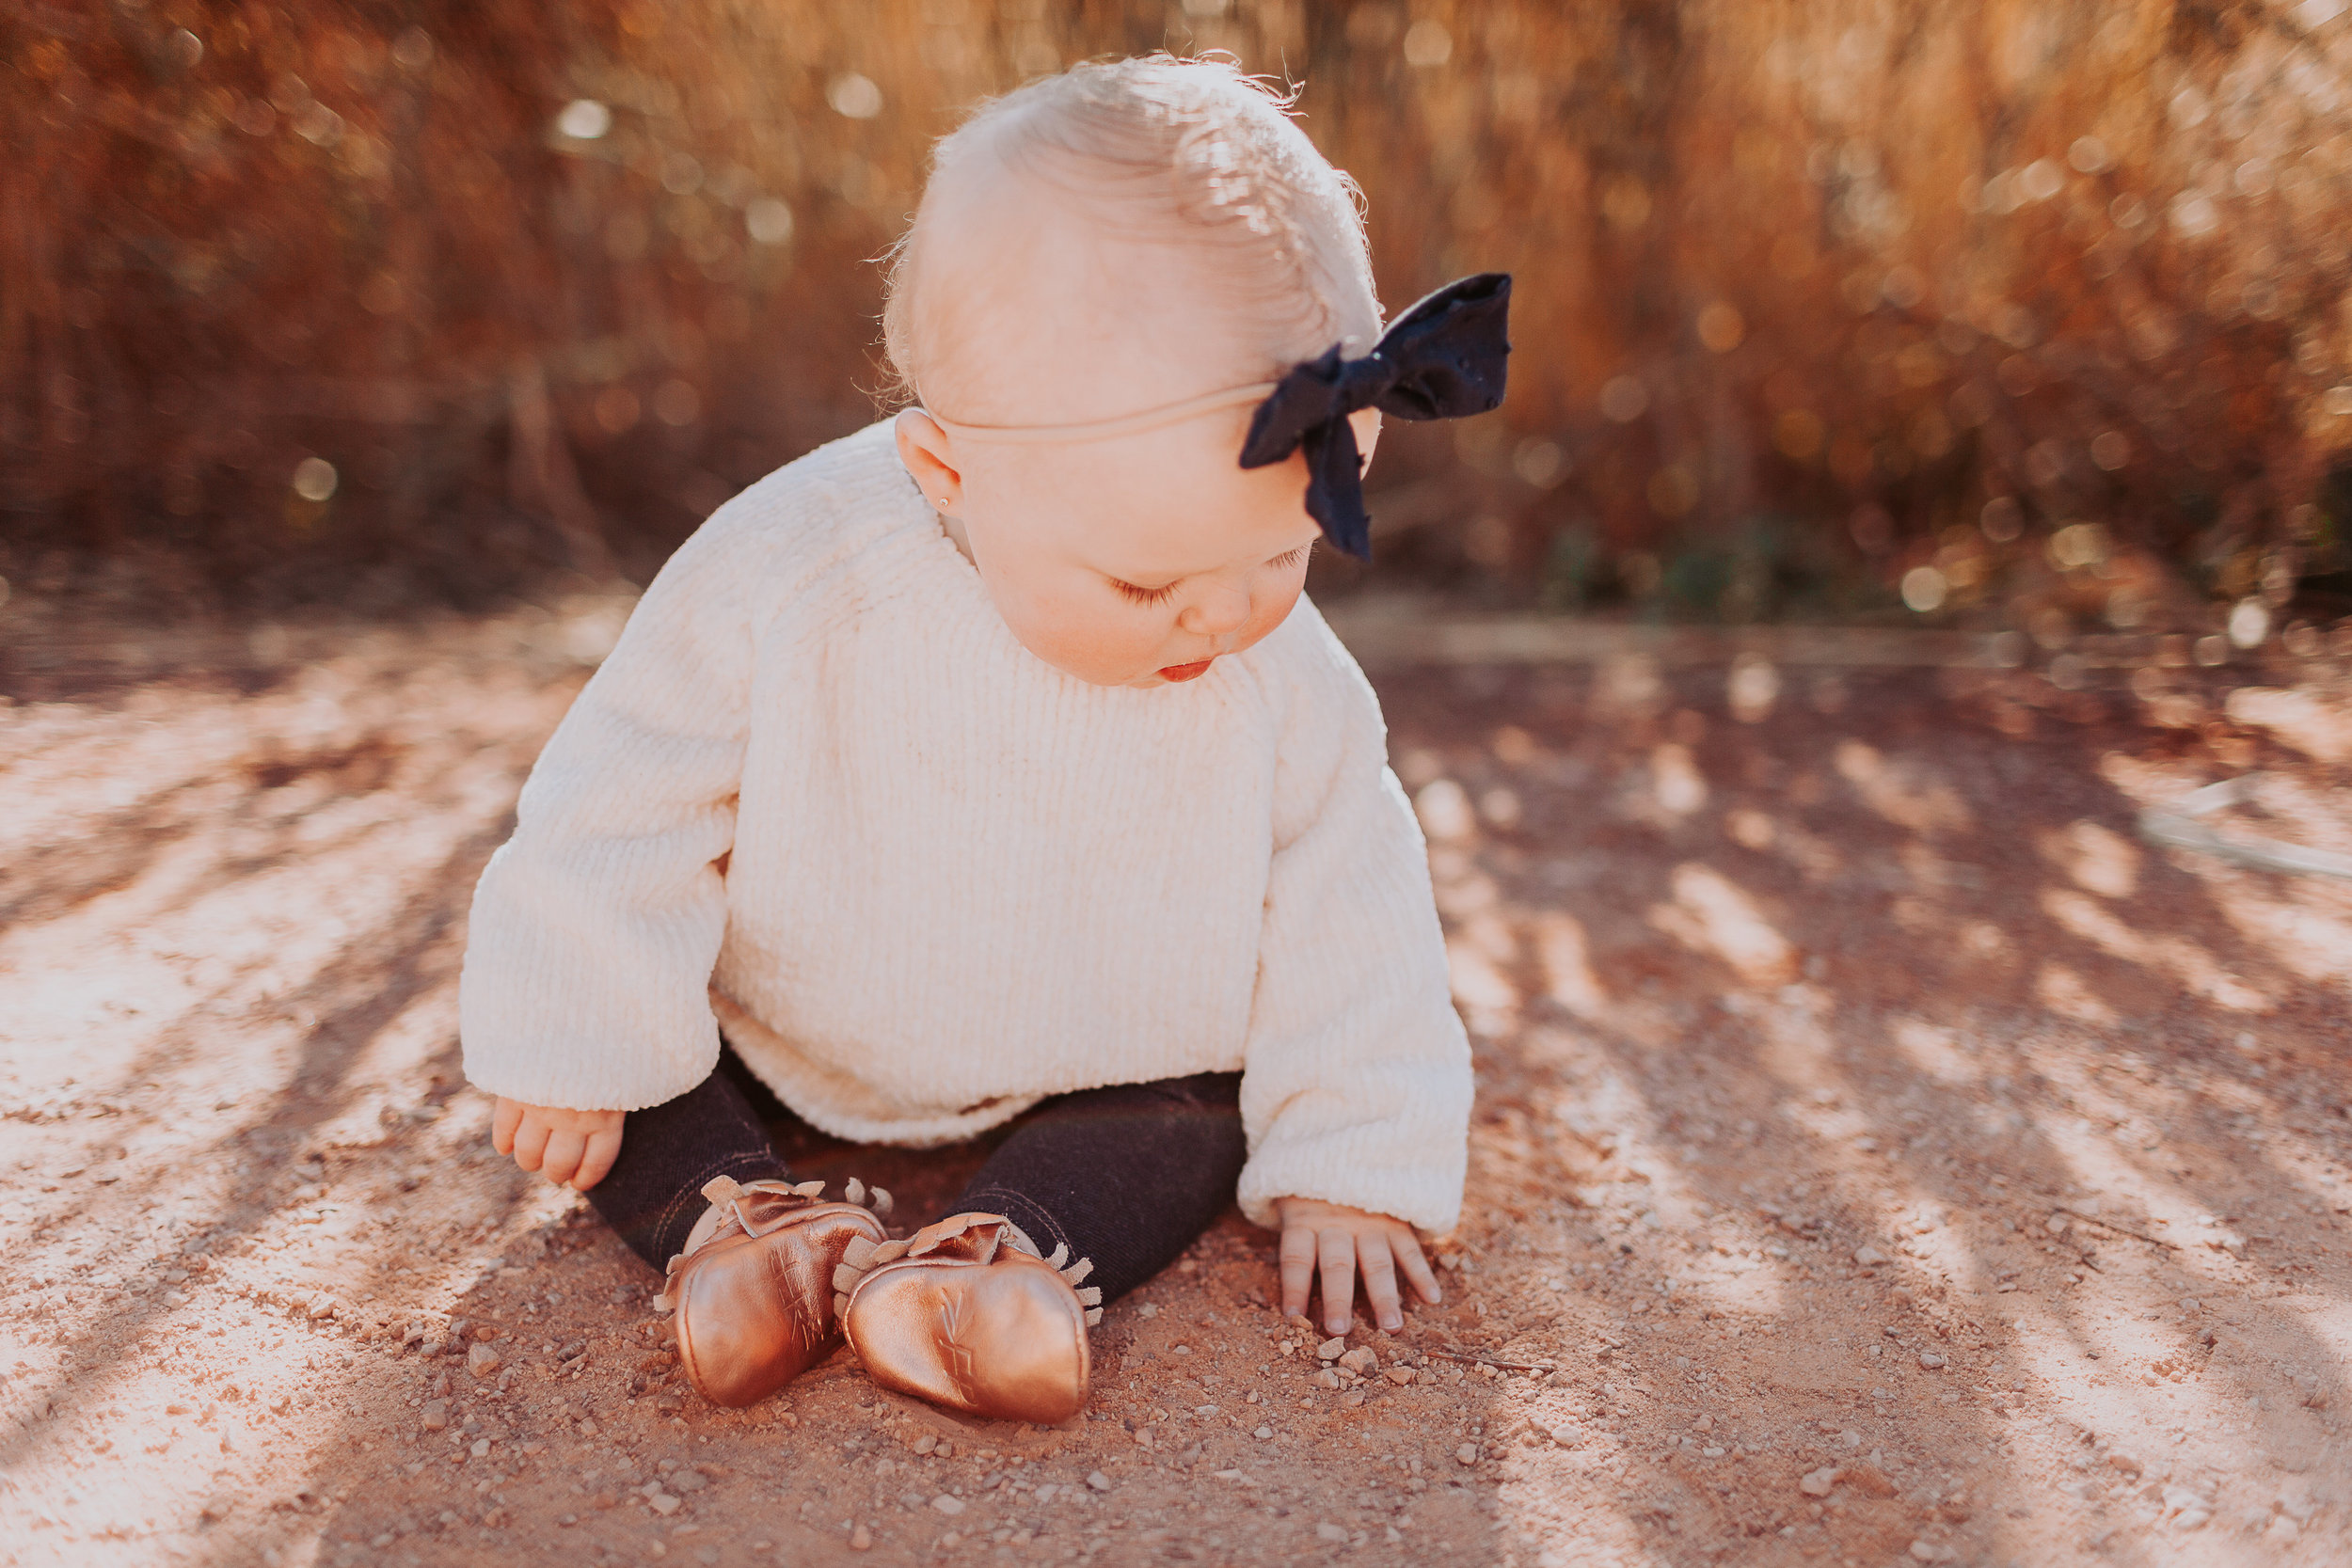 Twins First Birthday  by popular Las Vegas lifestyle bloggers Life of a Sister